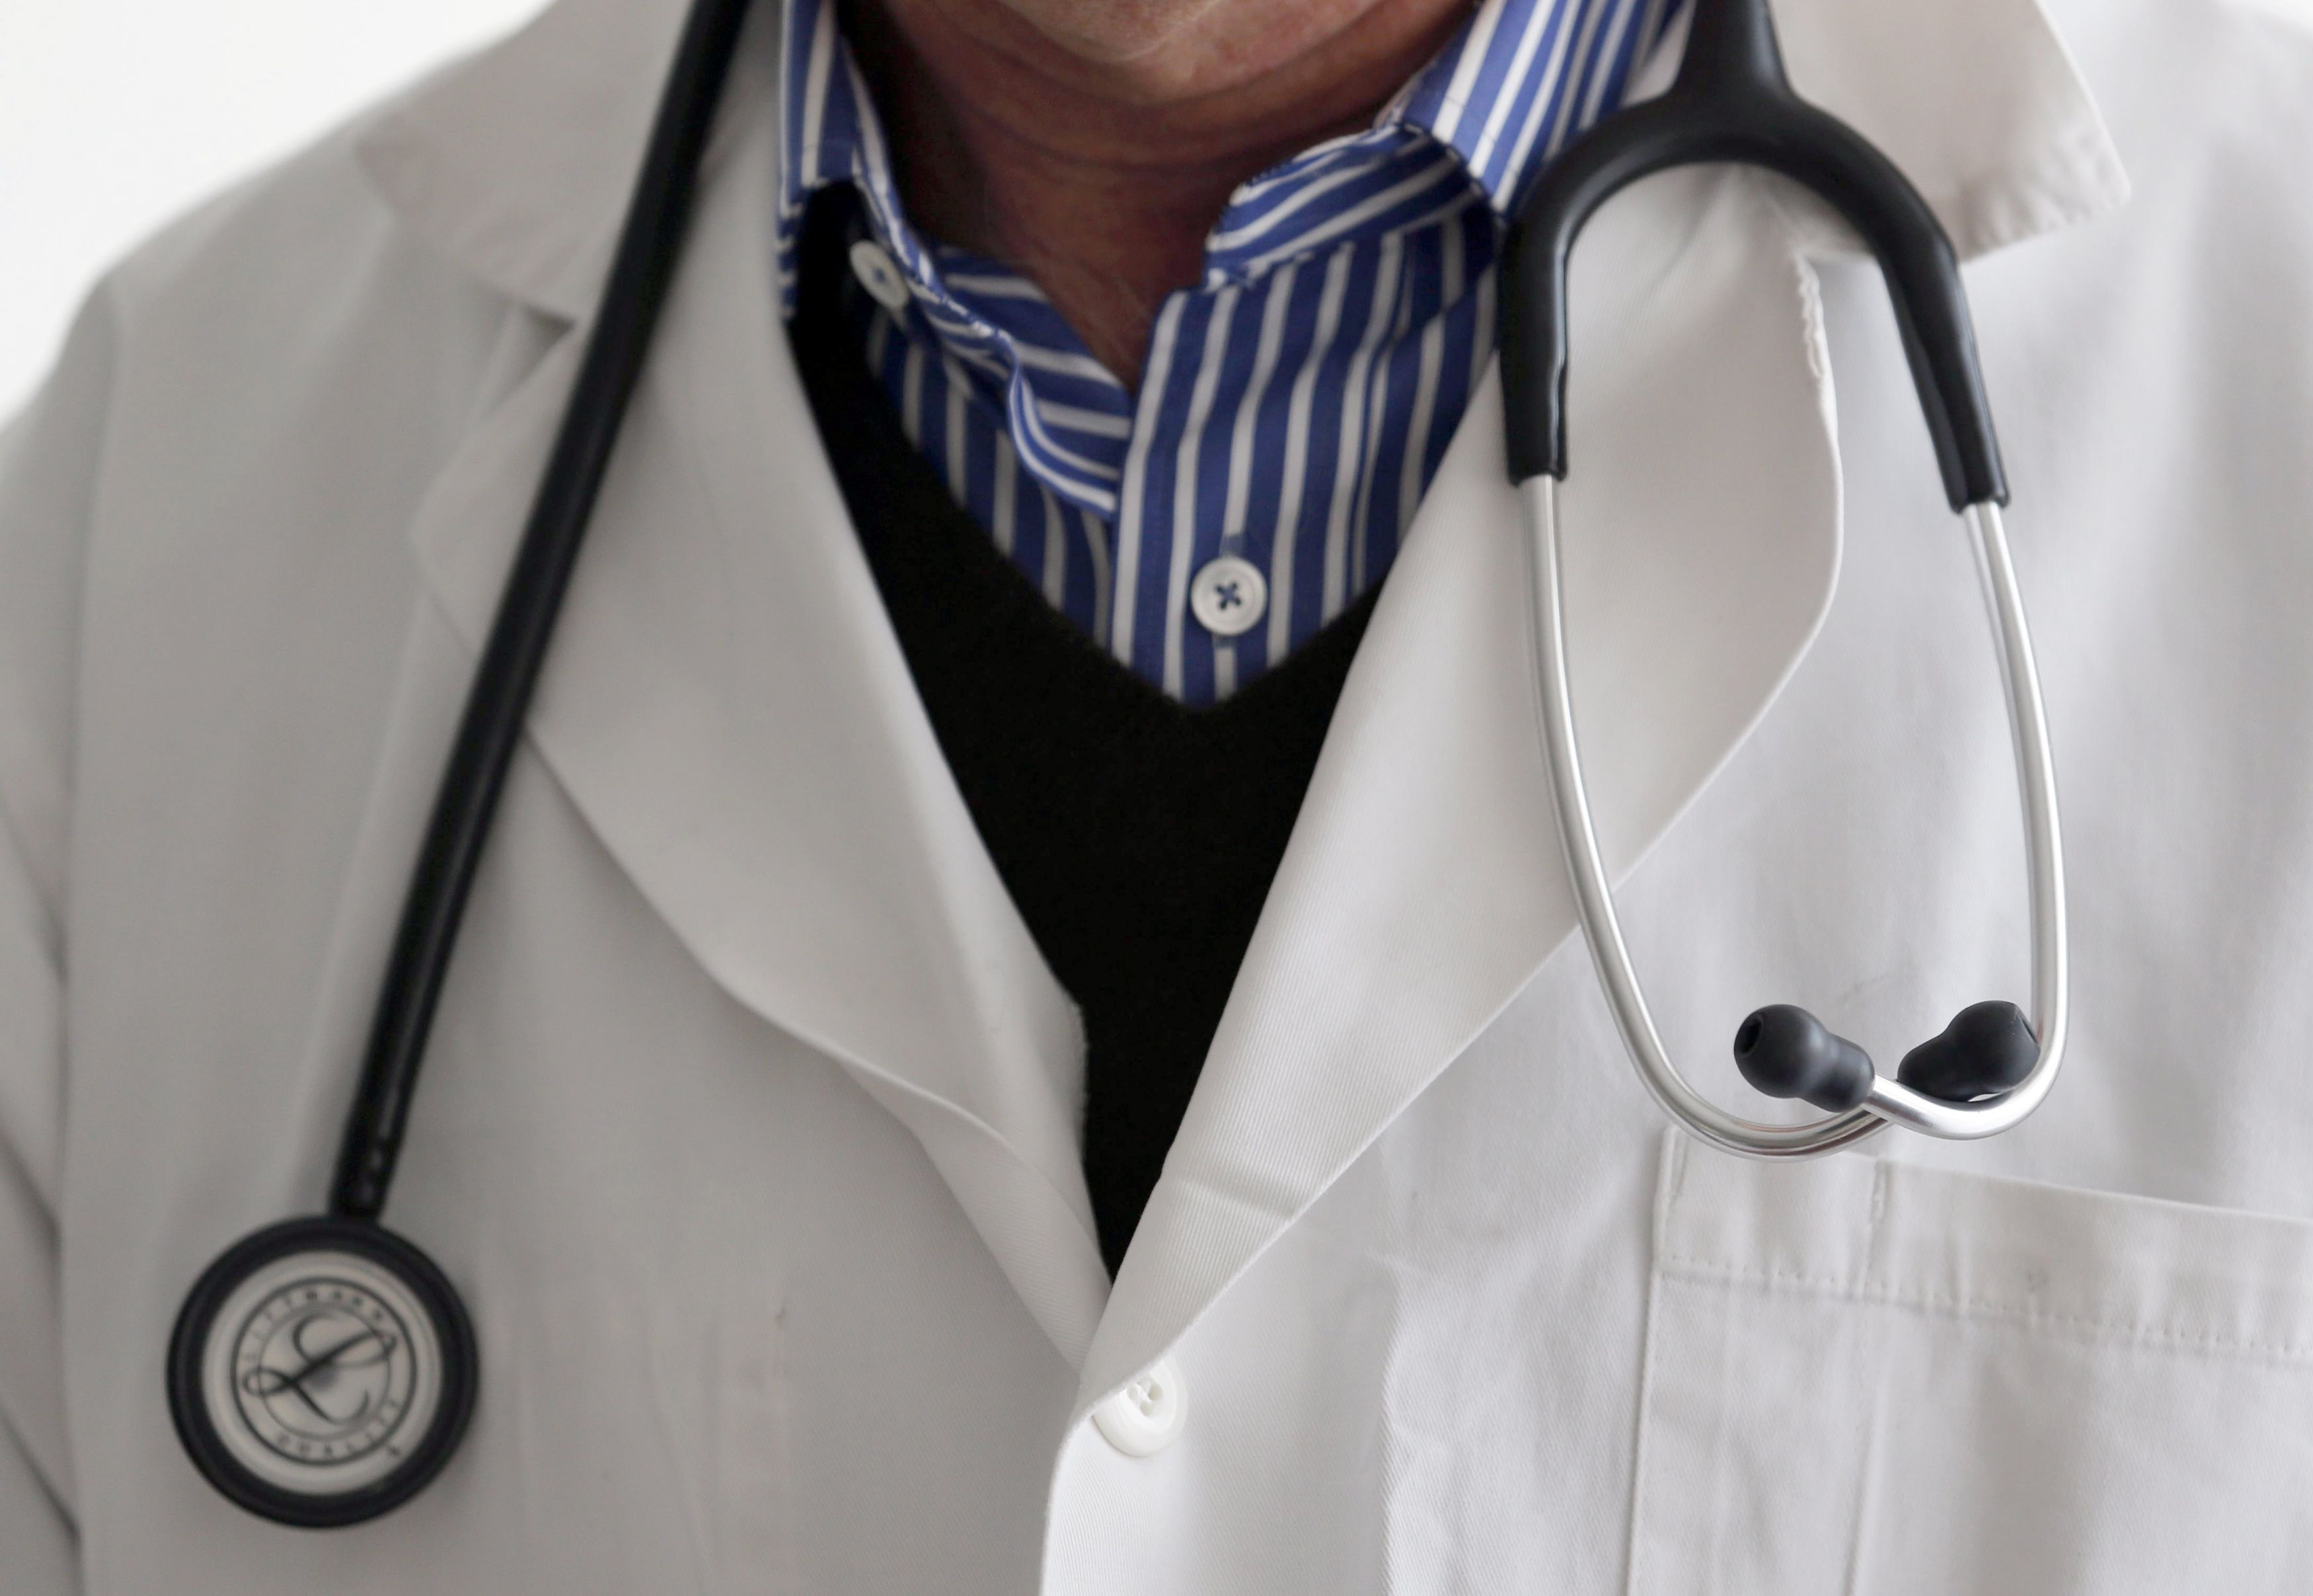 How does insurance impact the way doctors treat patients